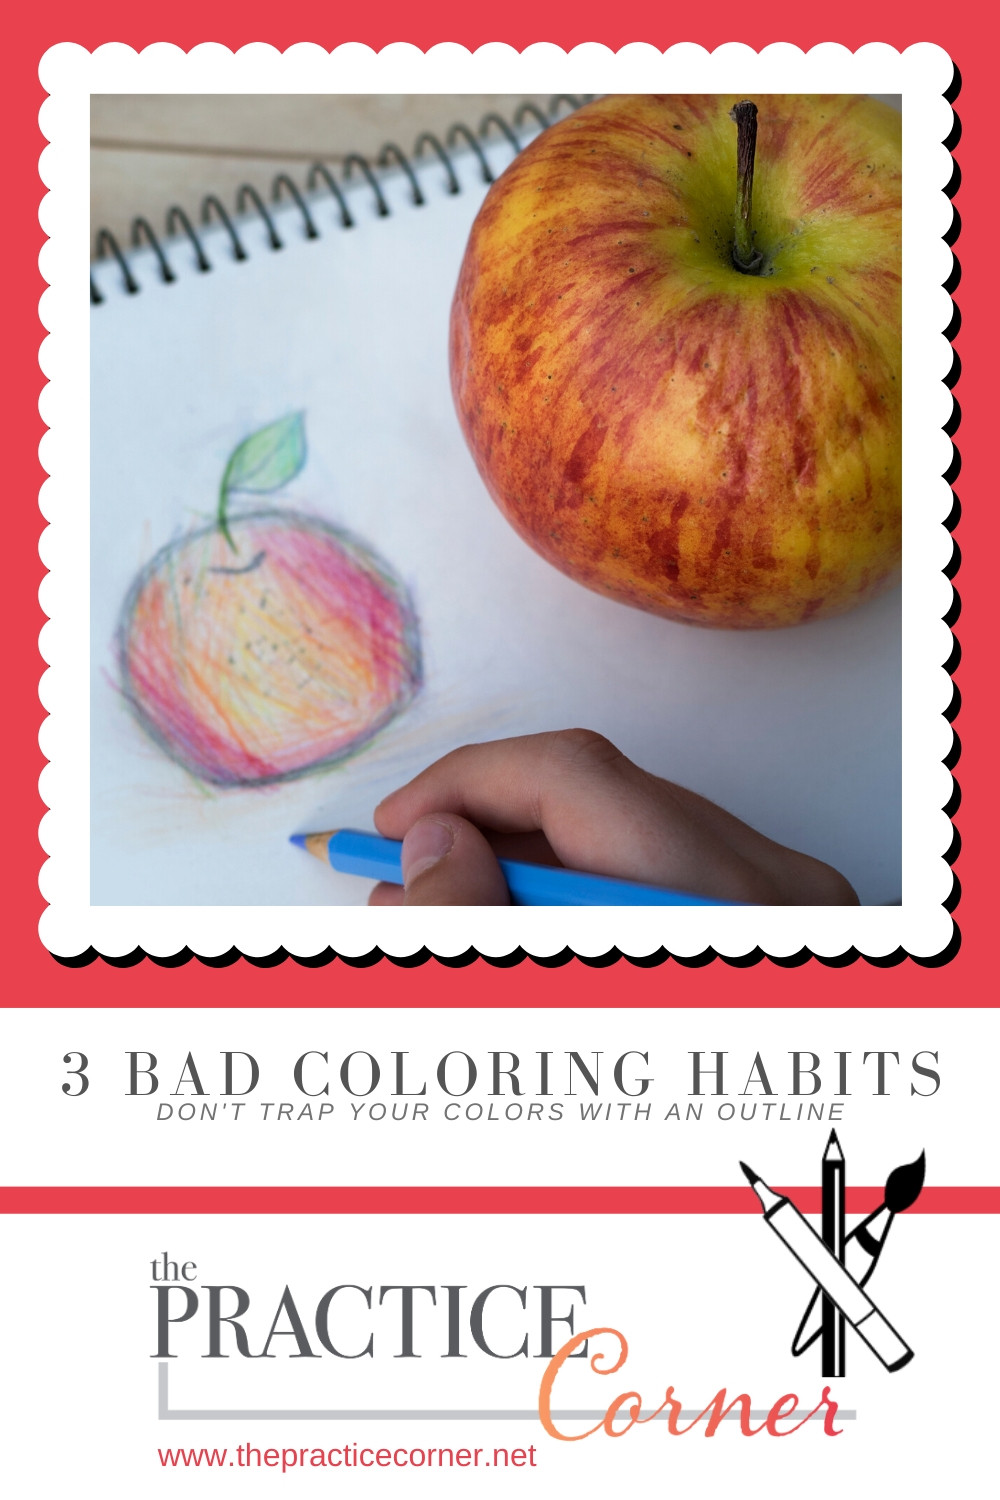 3 Bad Coloring Habits and How You Can Correct Them  | How to improve your coloring | What to practice with Copic Markers | What to practice with colored pencils | #coloredpencil #coloredpencilpractice #copicmarker #copicmarkerpractice  #thepracticecorner #realisticcoloring #coloringtechniques